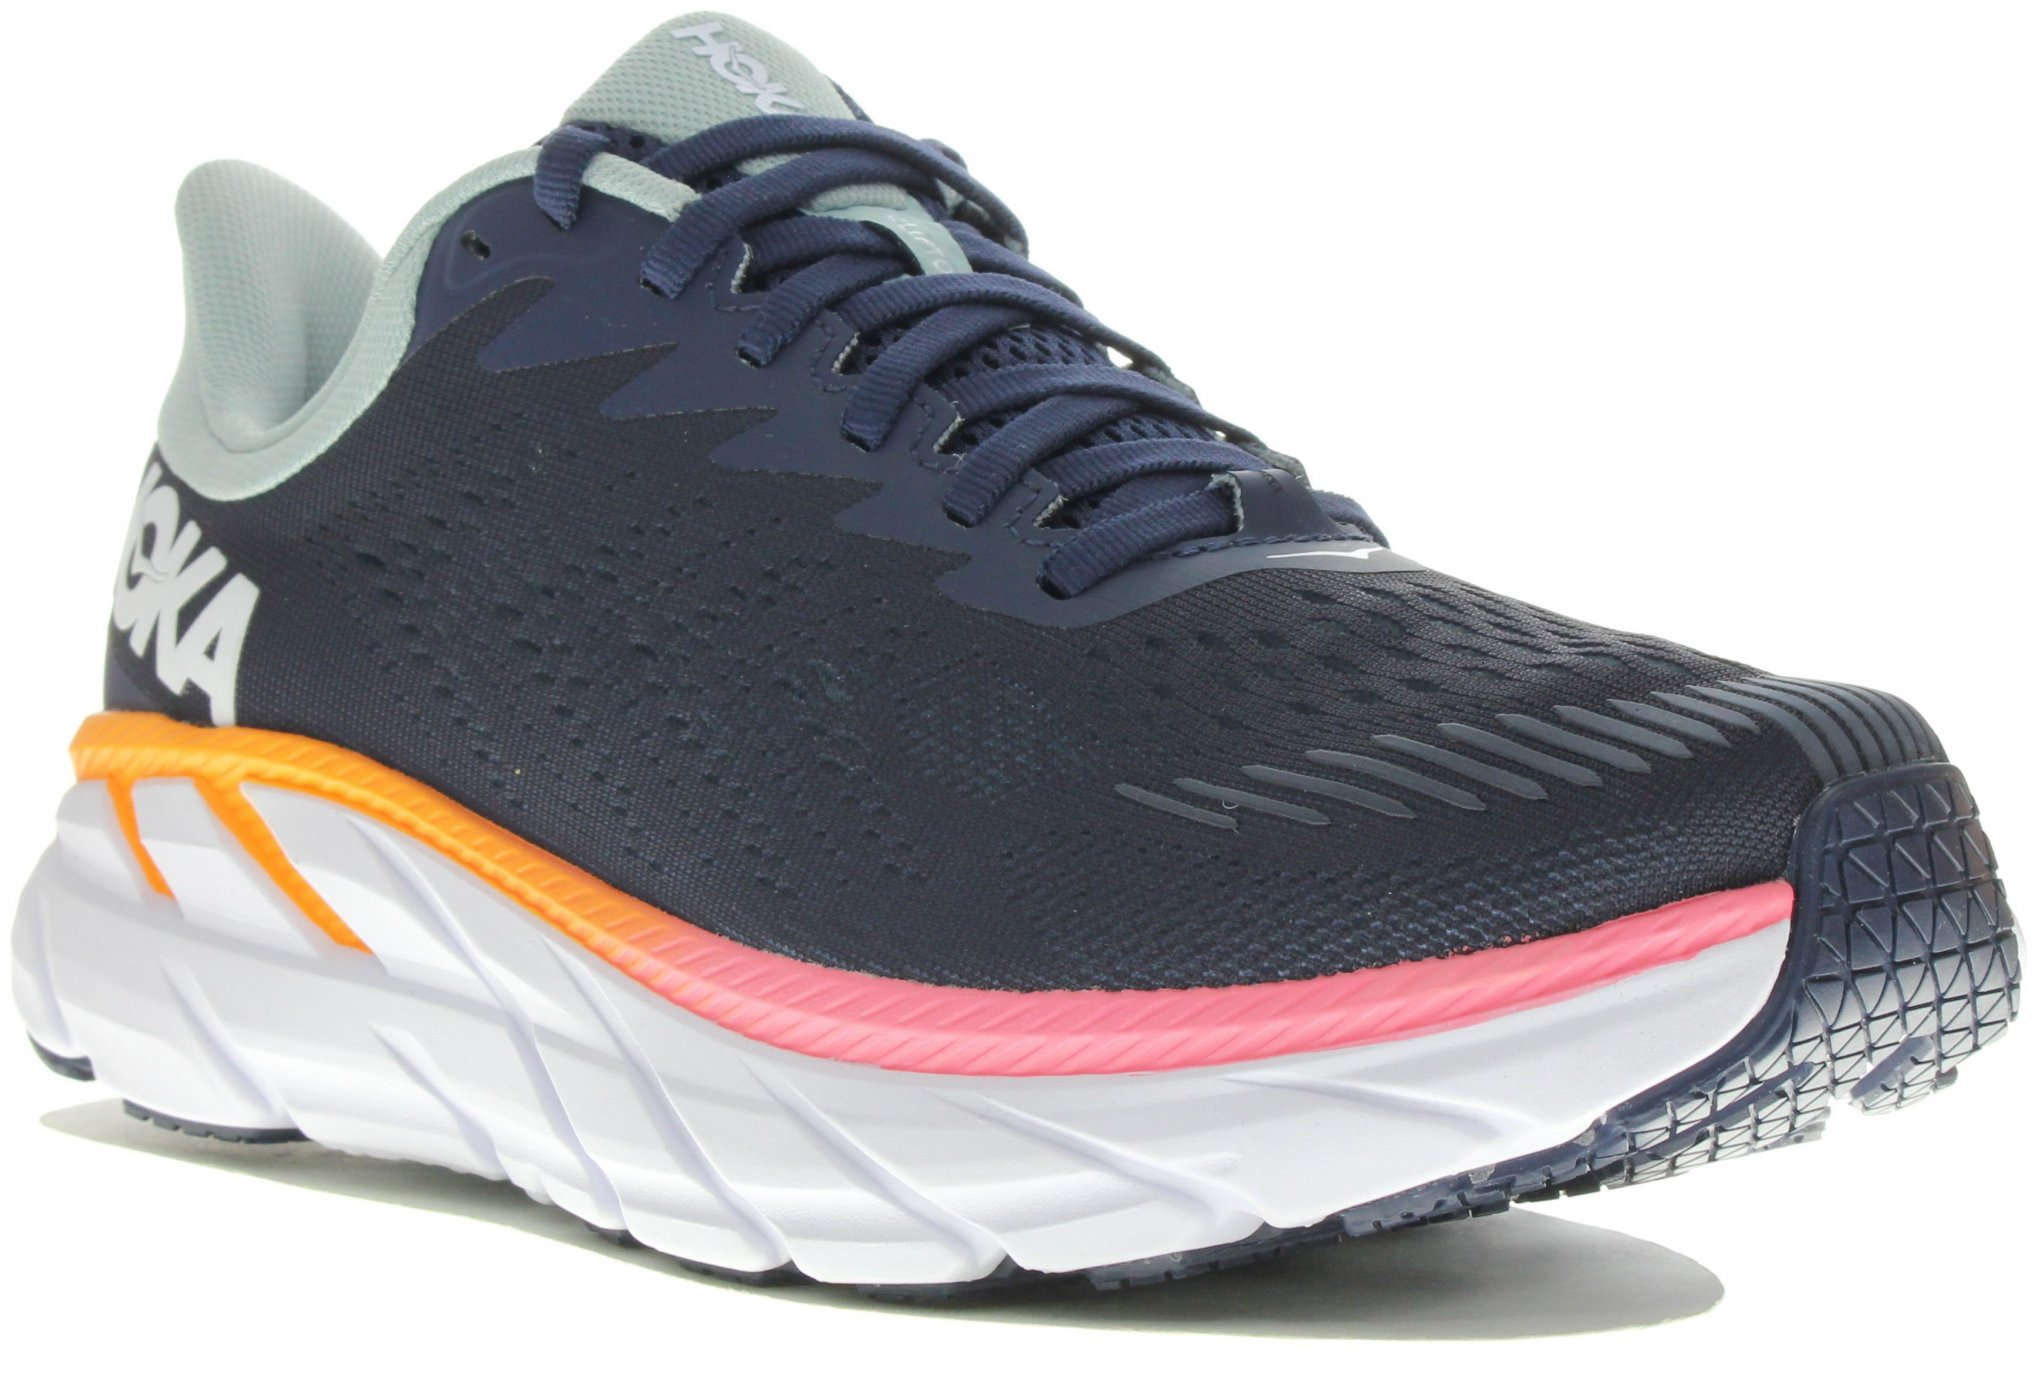 Hoka One One Clifton 7 Wide Chaussures running femme